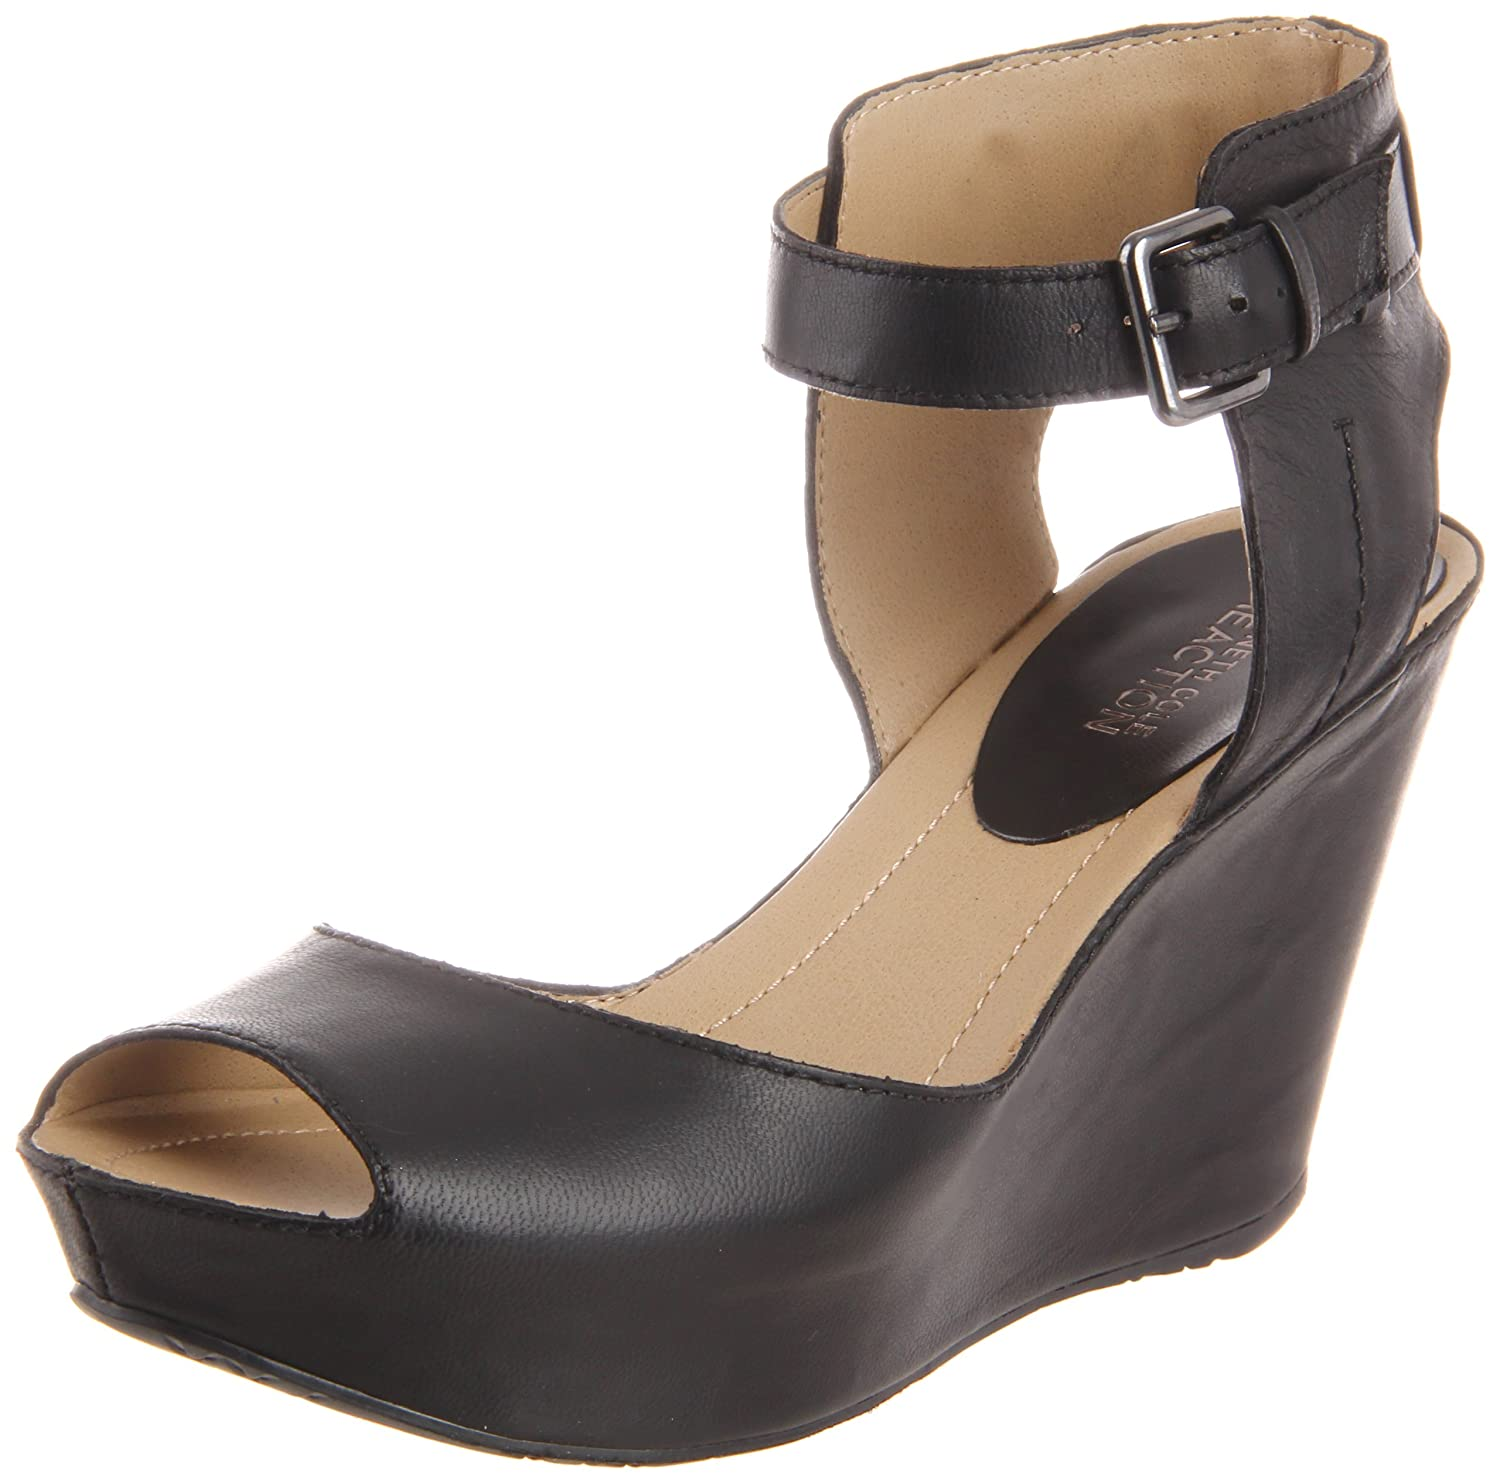 Kenneth Cole Womens Shoes Uk